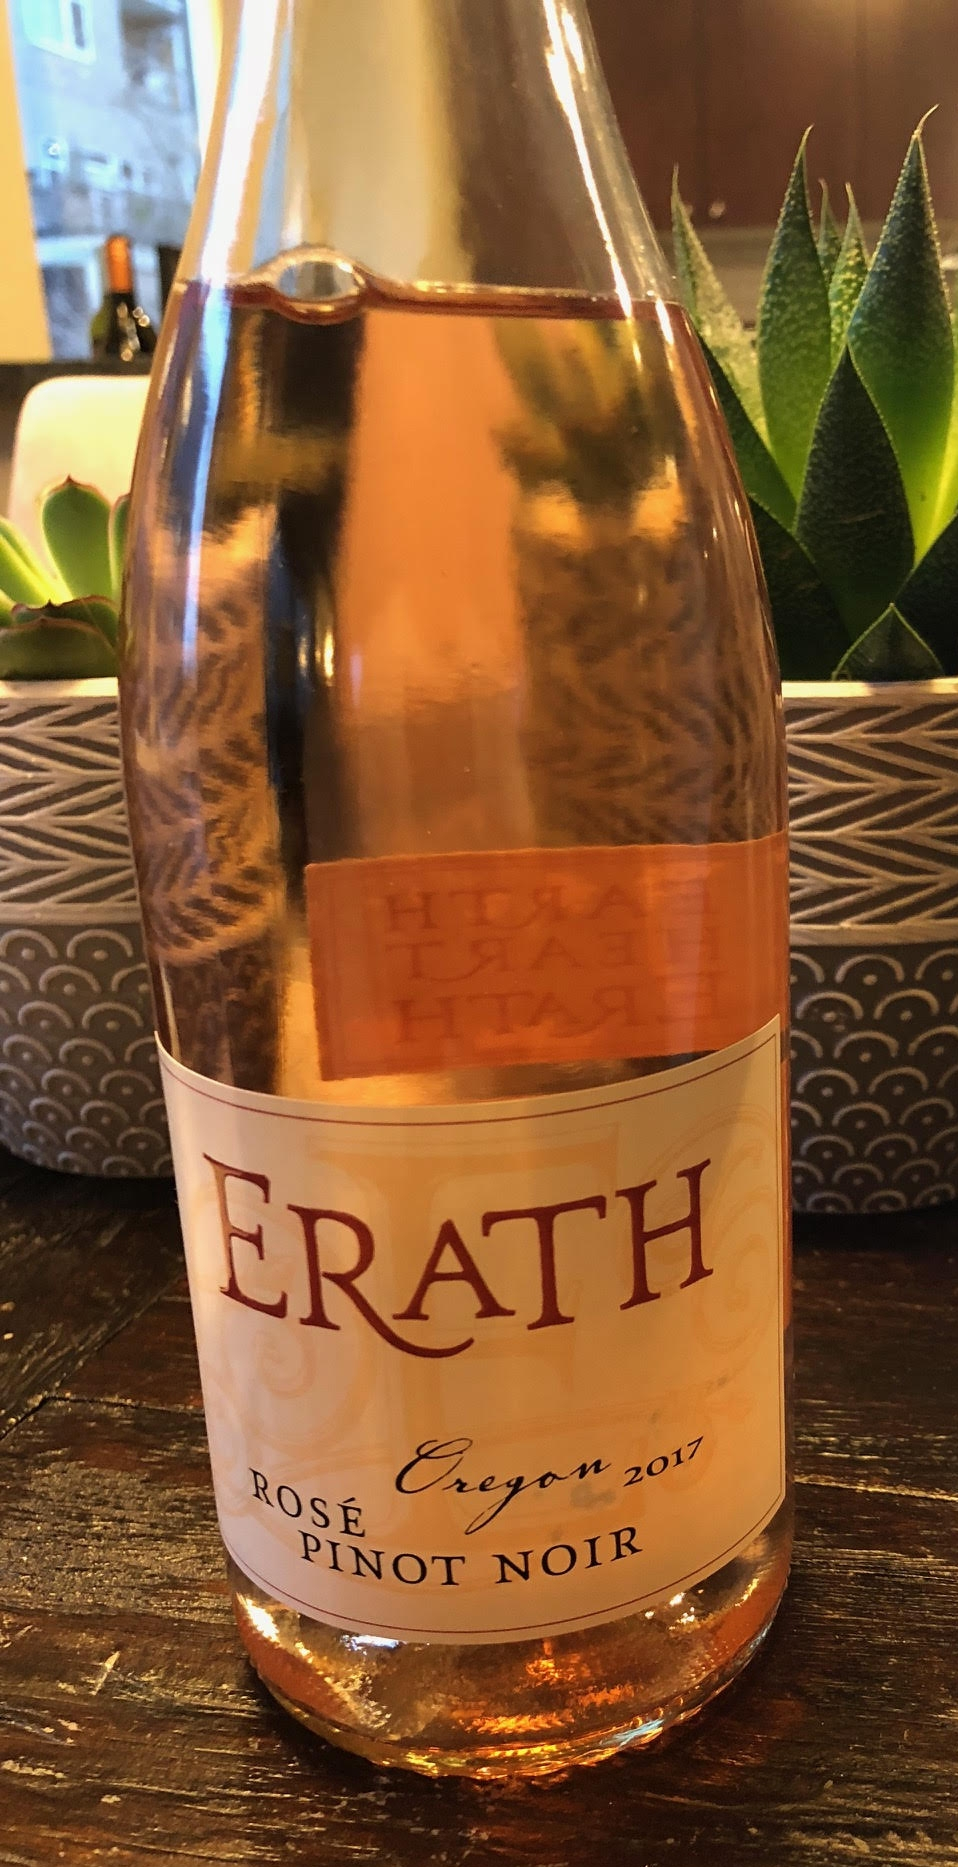 Erath 2017 Rose.jpg